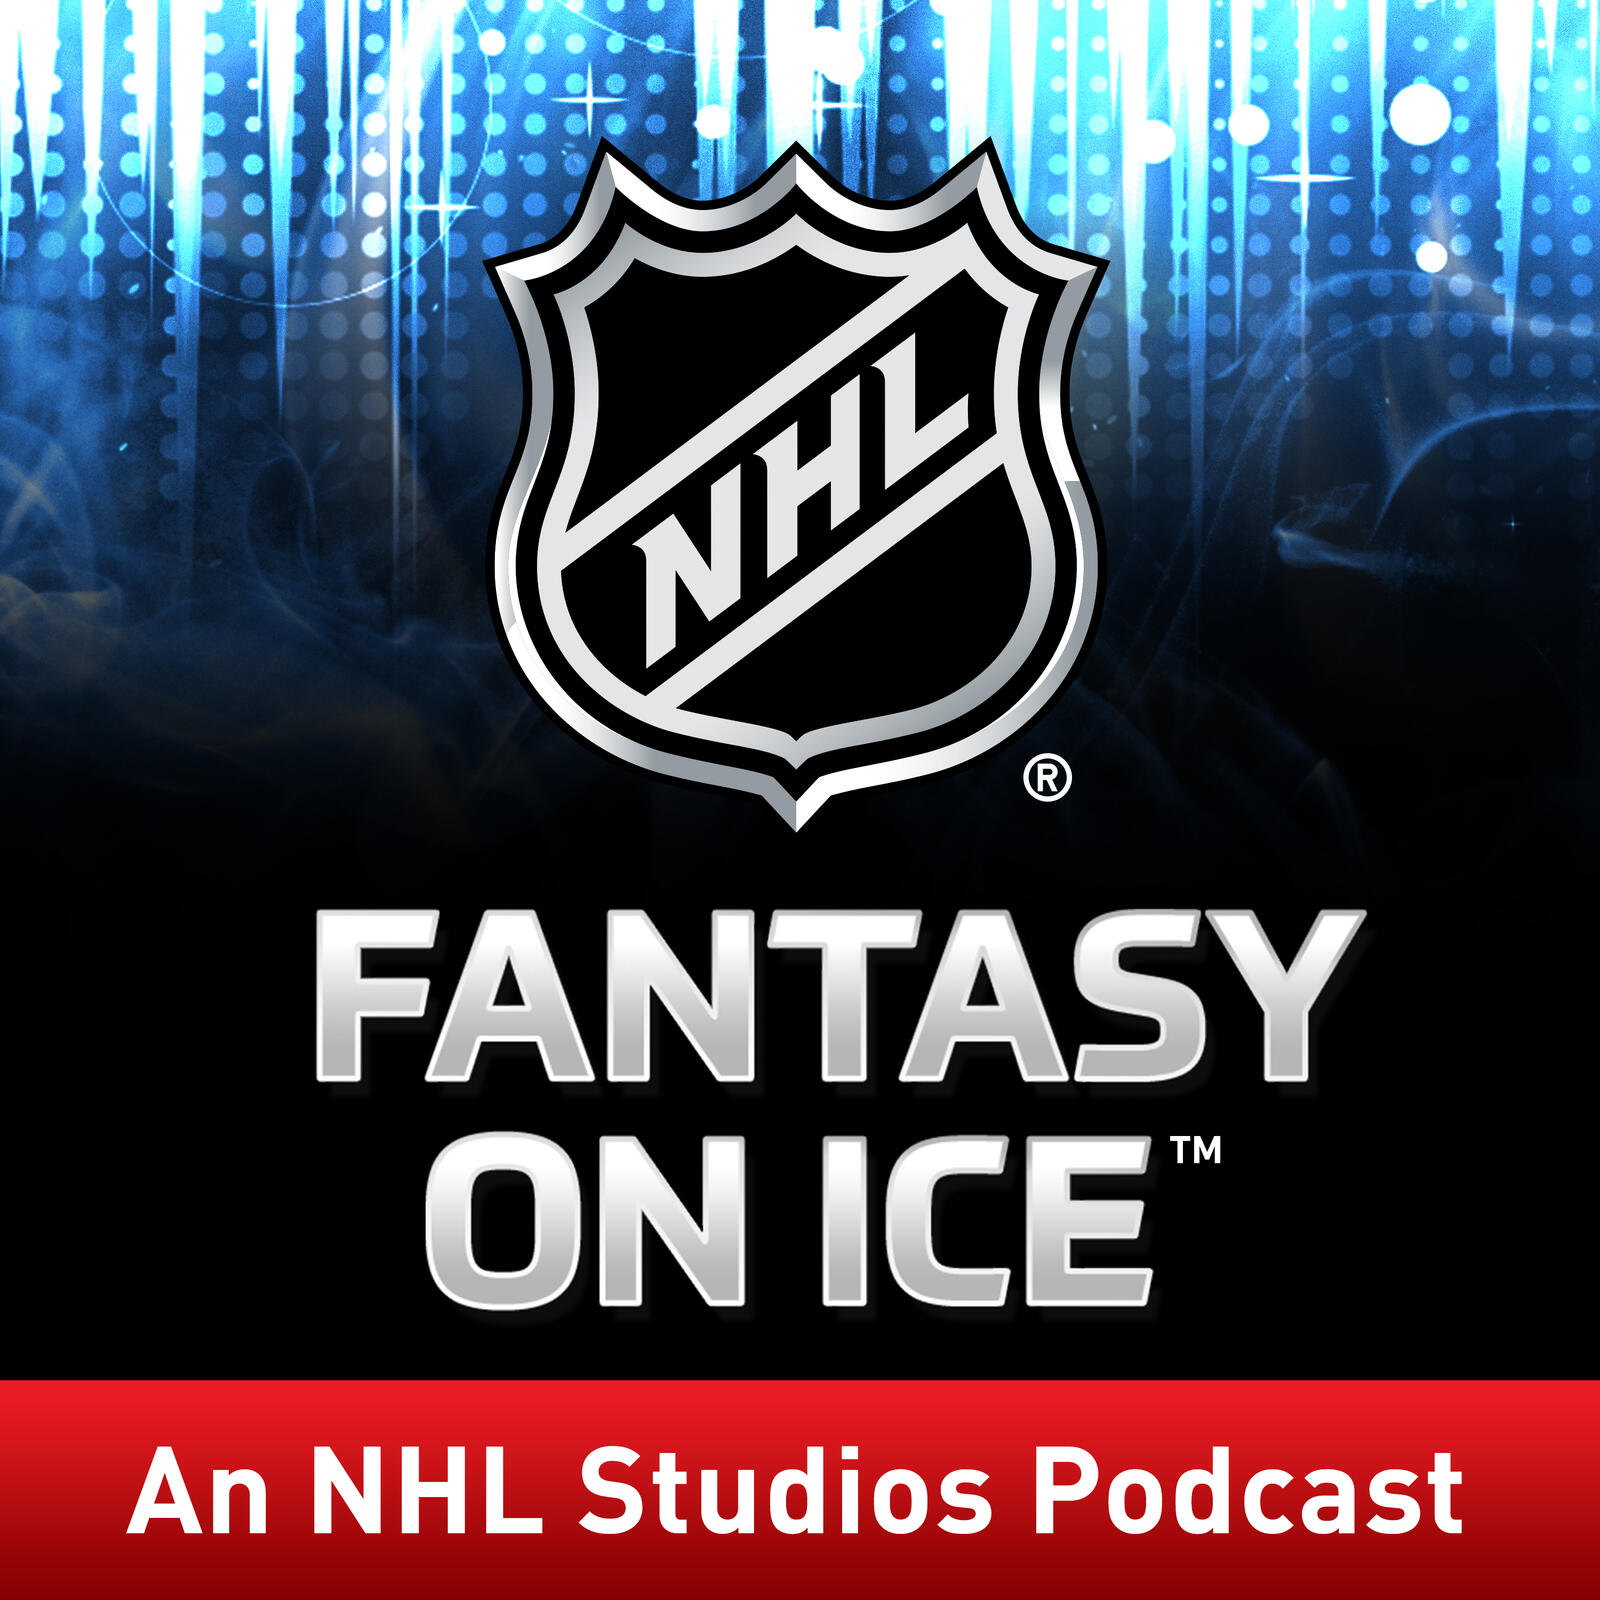 NHL Fantasy on Ice by National Hockey League on Apple Podcasts fd5f7dcab